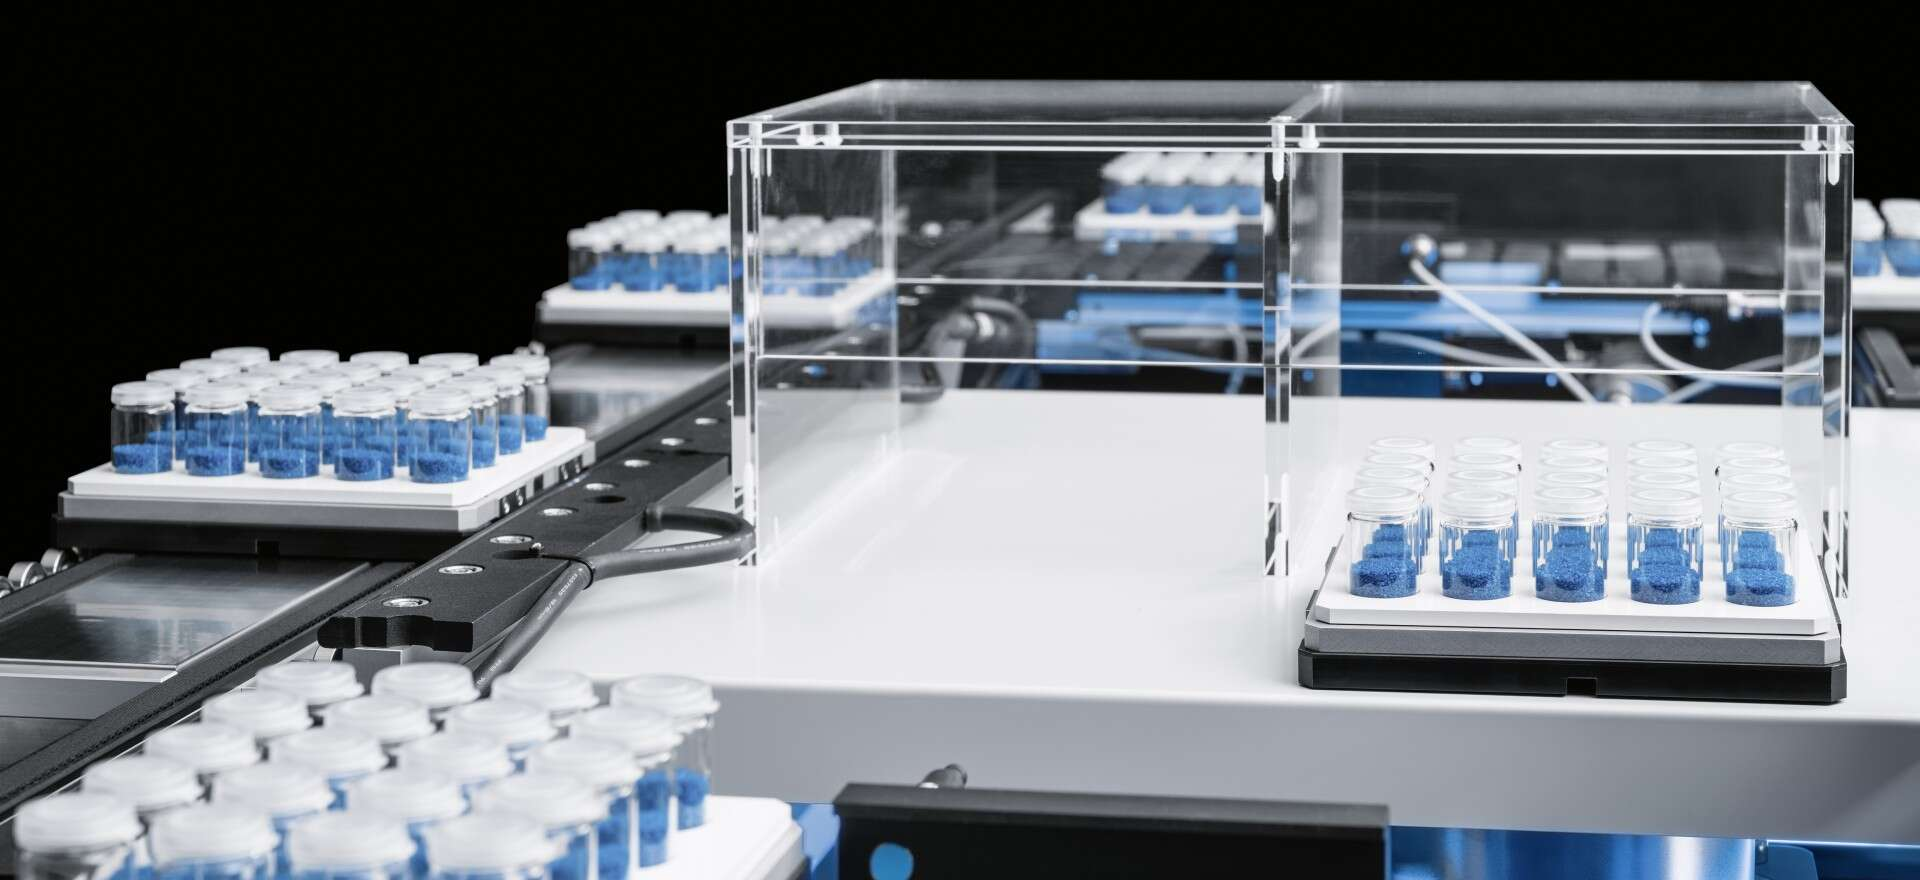 Festo SupraMotion: contactless transfer of levitating objects